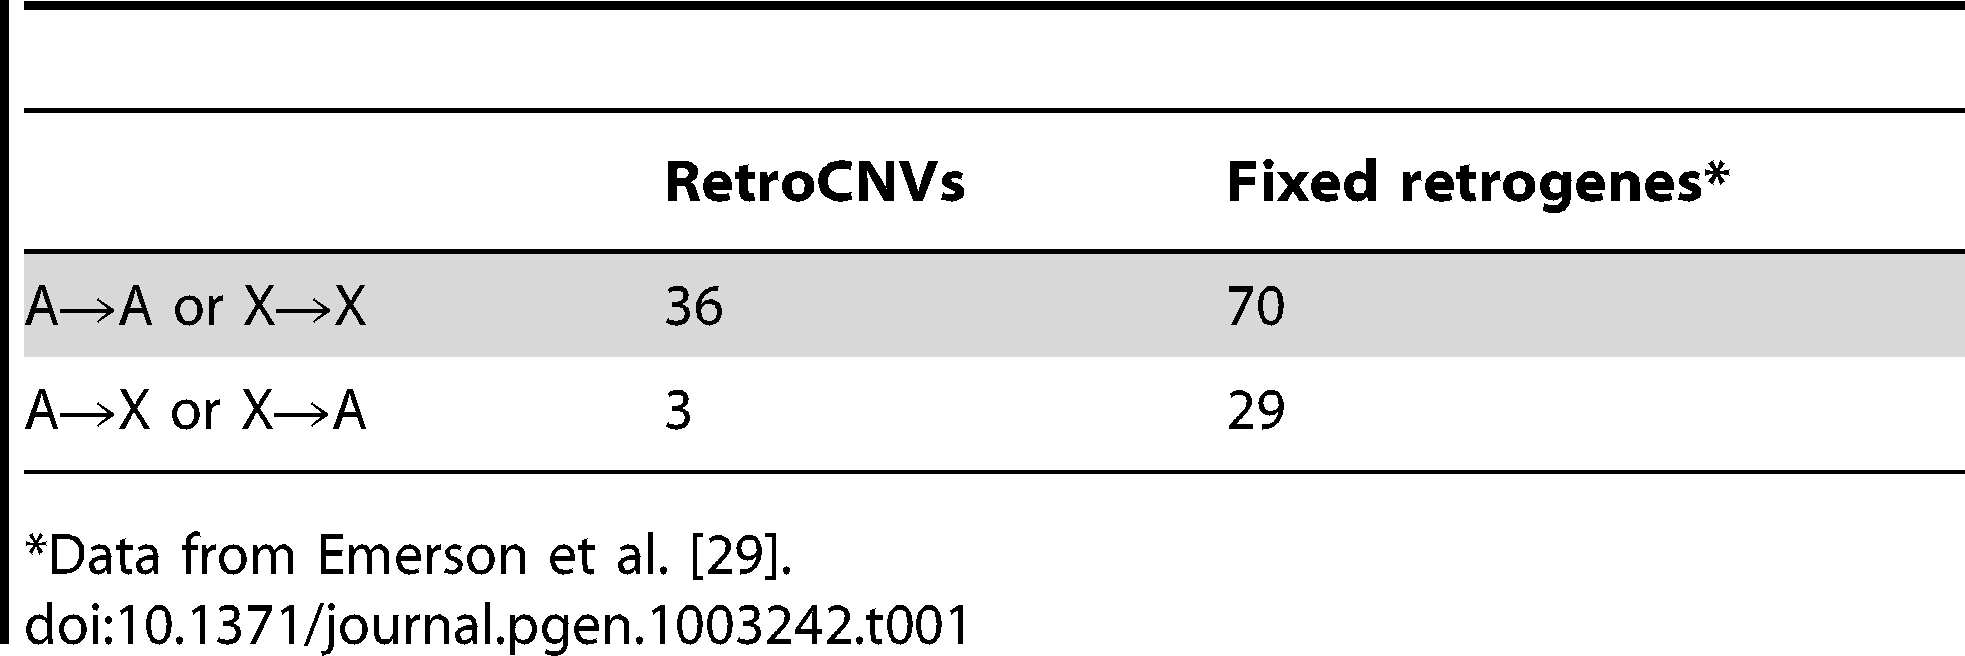 RetroCNVs versus fixed retrogenes moving from an autosome to an autosome (A→A) from the X chromosome to the X (X→X), from the X to the autosomes (X→A), or vice-versa (A→X).